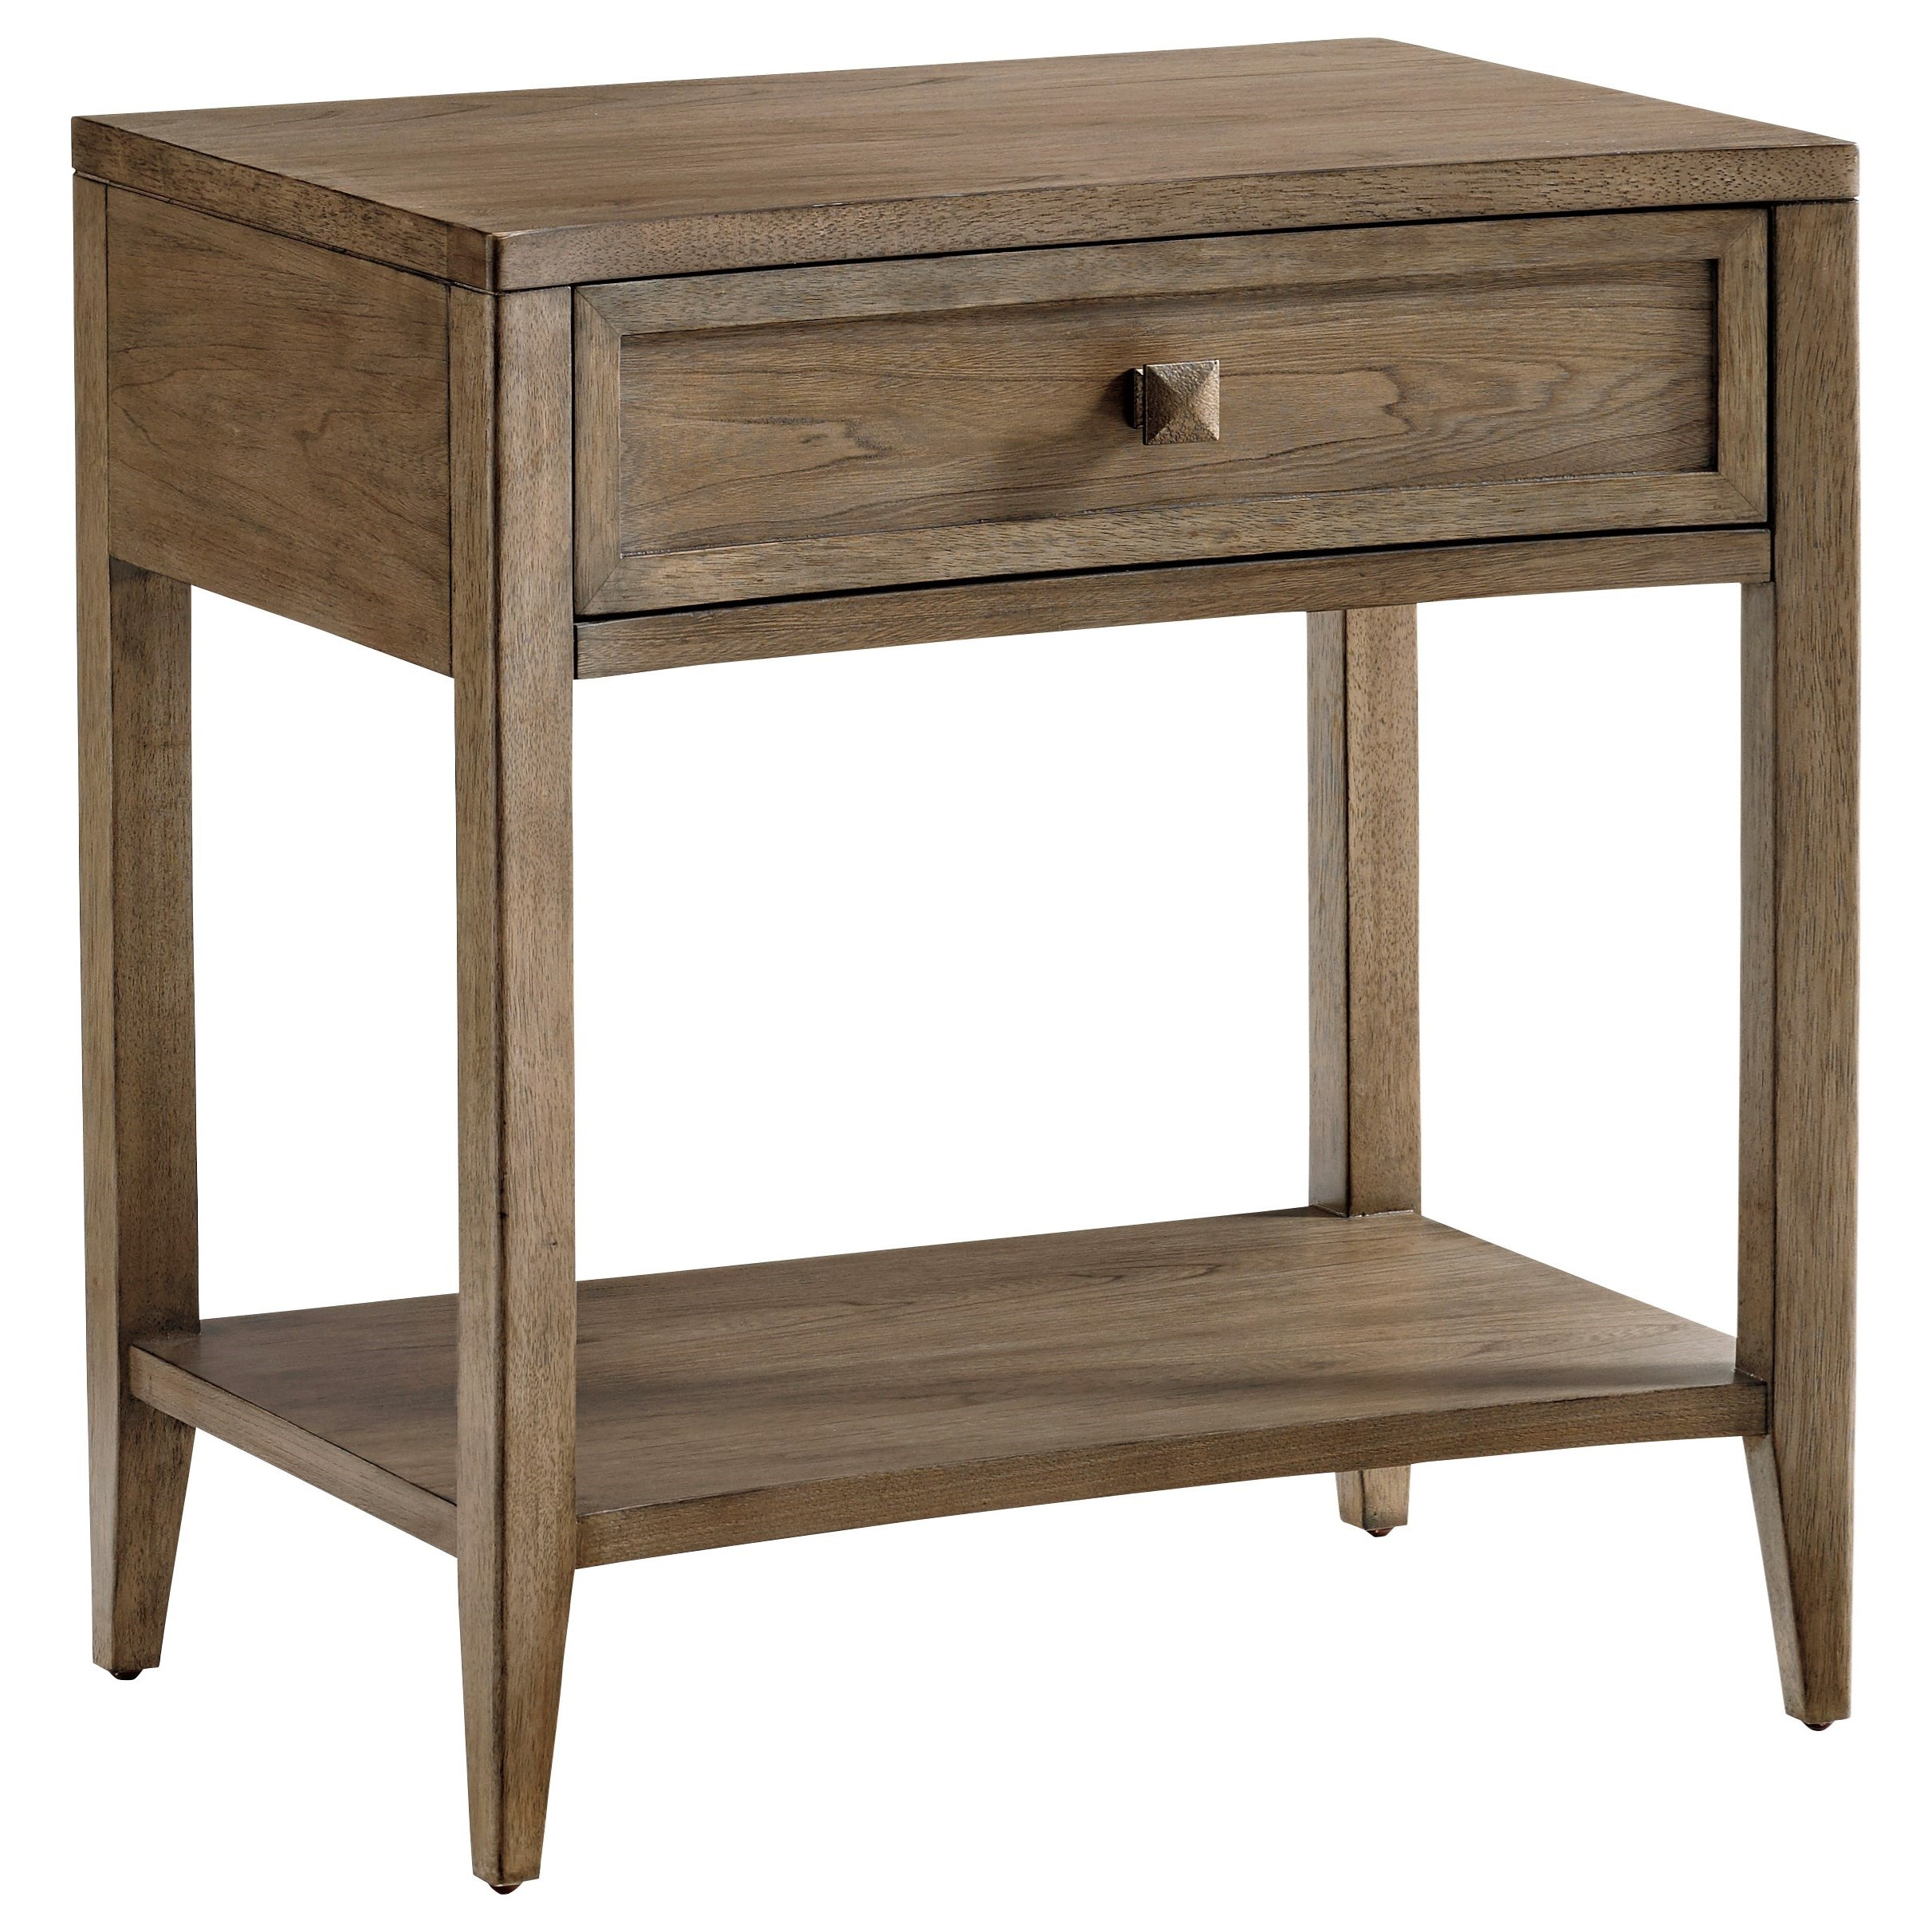 Tommy Bahama Home Cypress Point Stevenson Open Nightstand - Item Number: 561-623